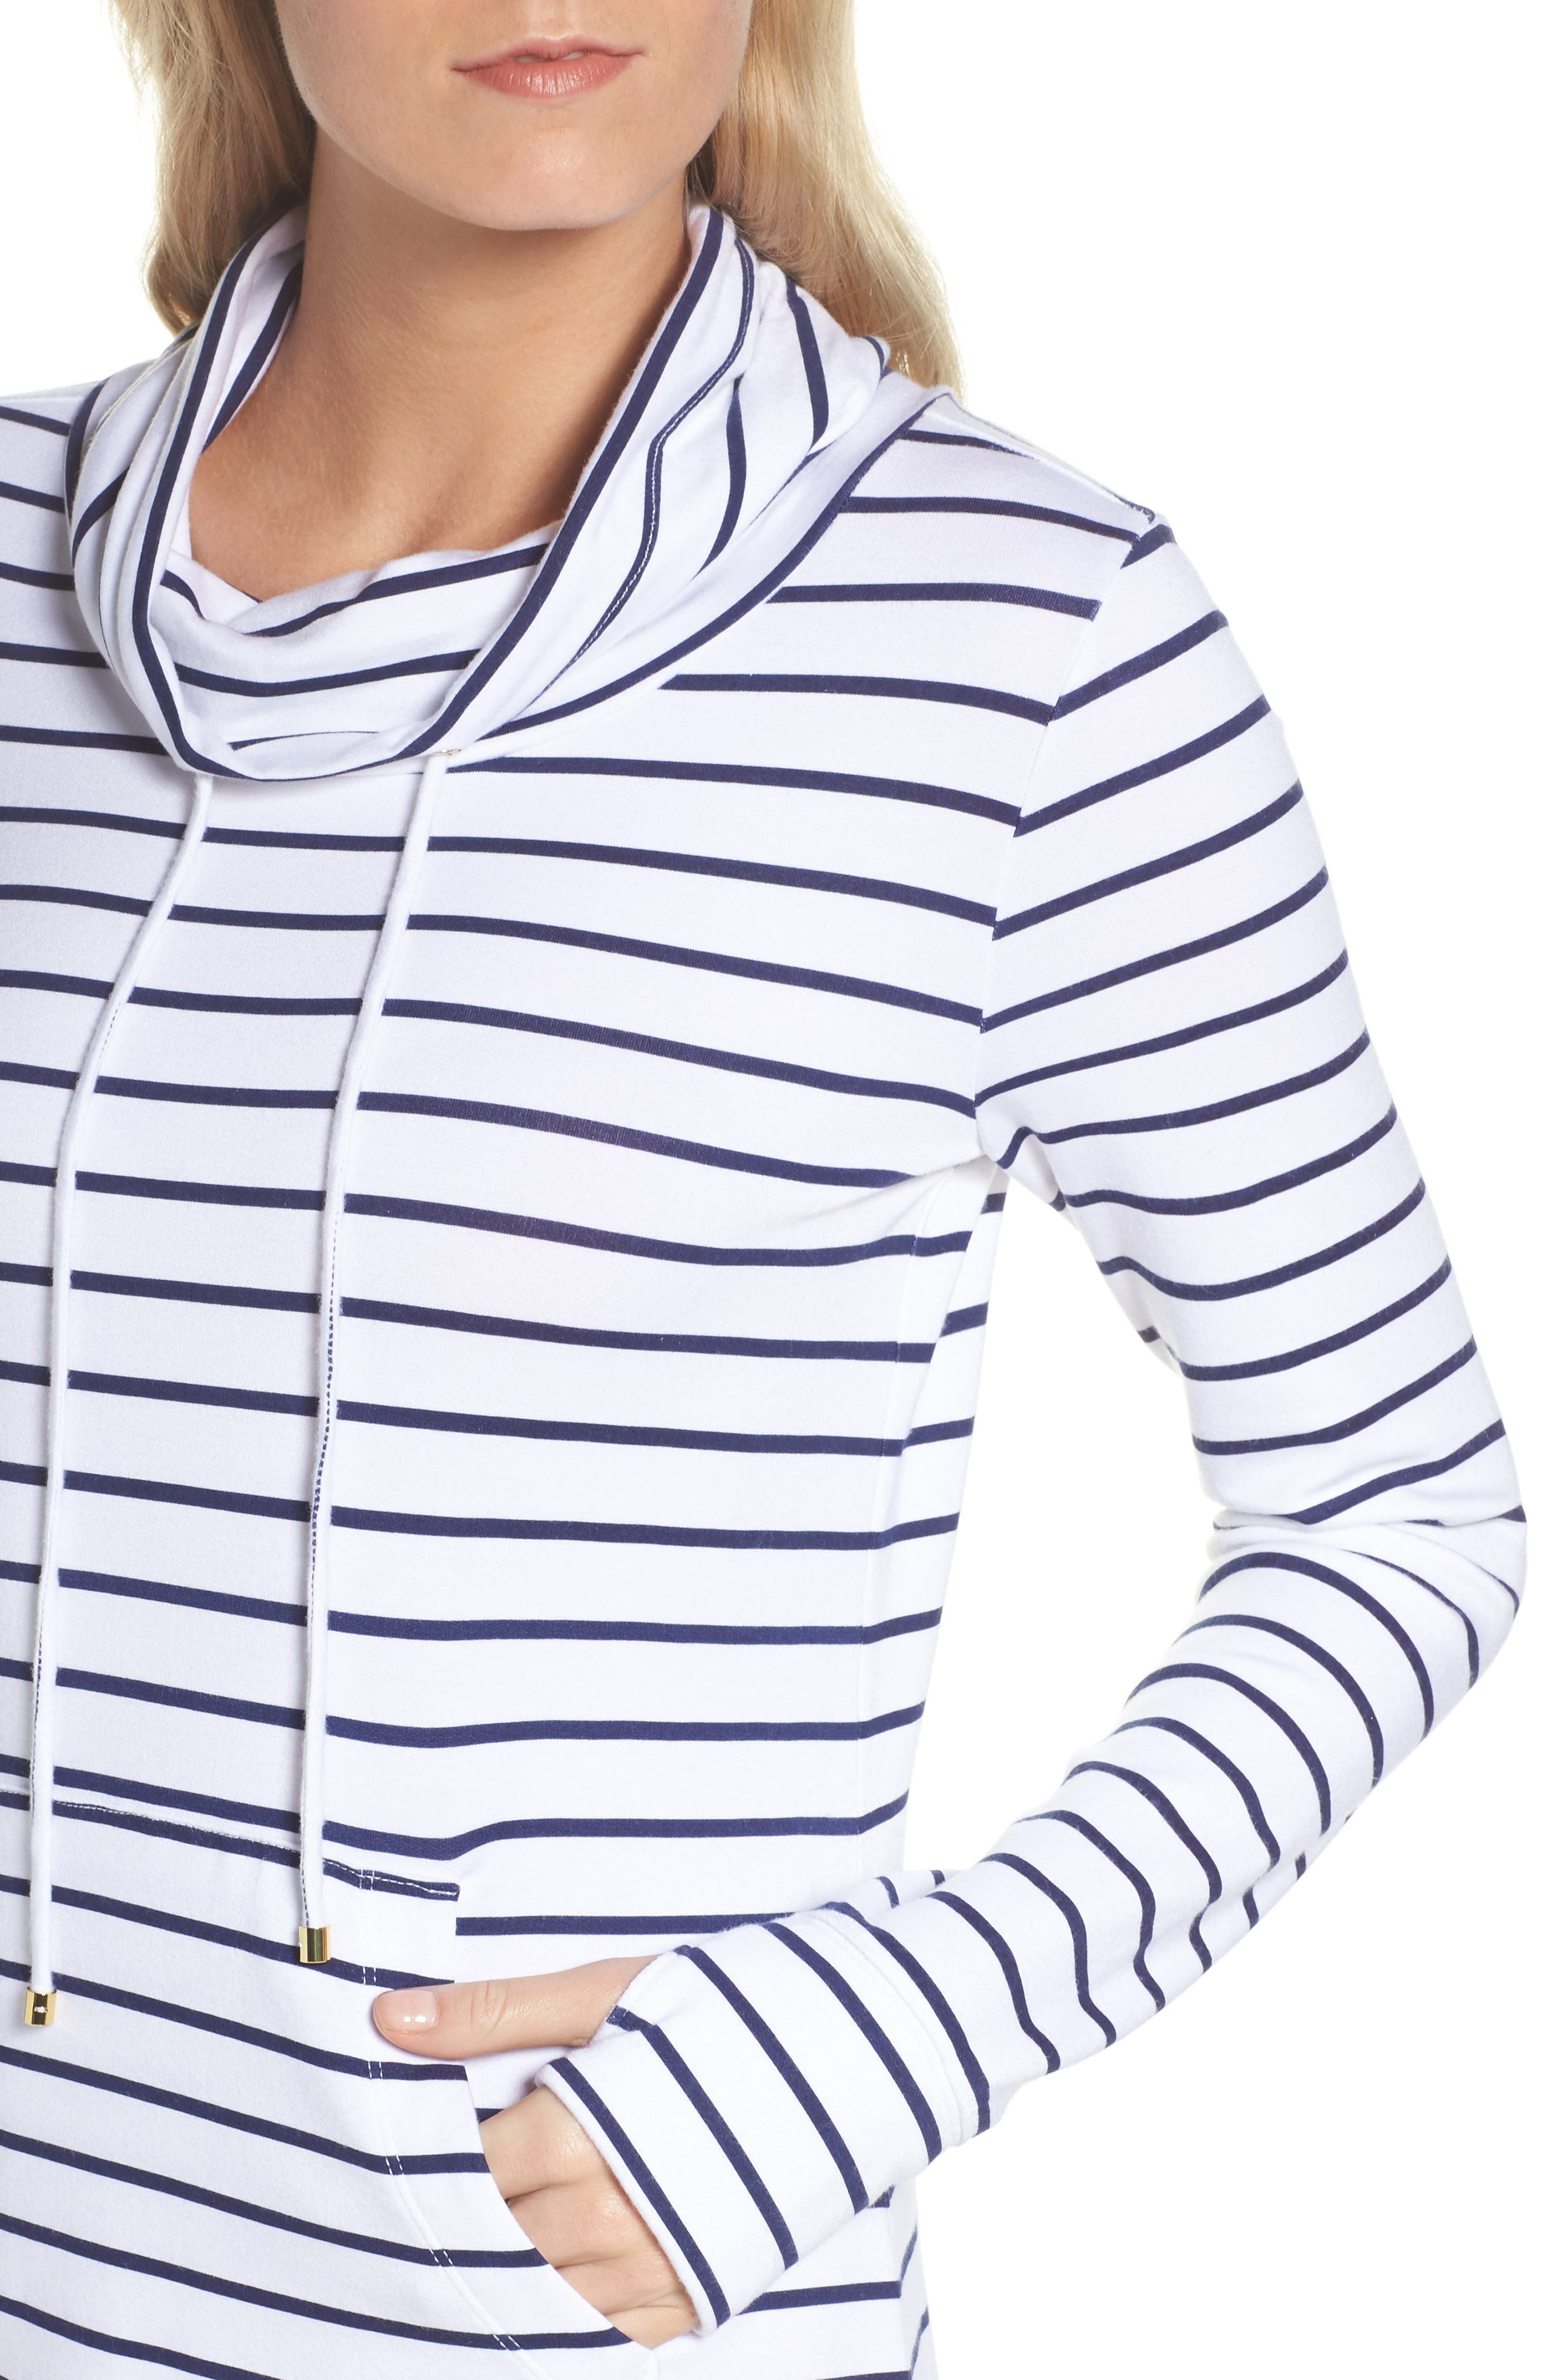 Hilary UPF 50+ Dress,                             Alternate thumbnail 4, color,                             Bright Navy Mystic Stripe